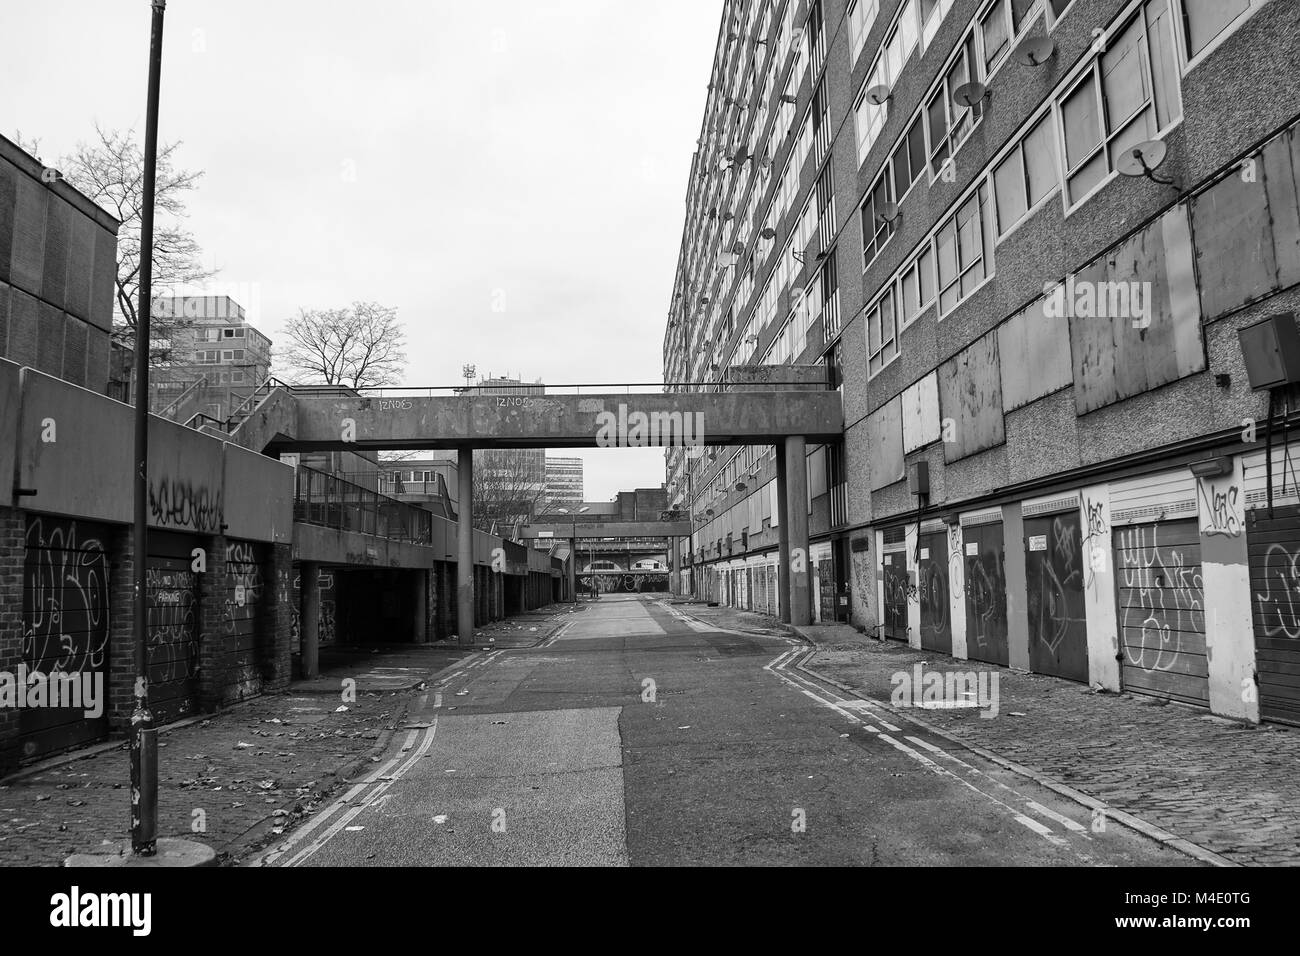 Black & White Photograph of the Heygate Estate, Southwark, South London. Photographed just before it was demolished. - Stock Image